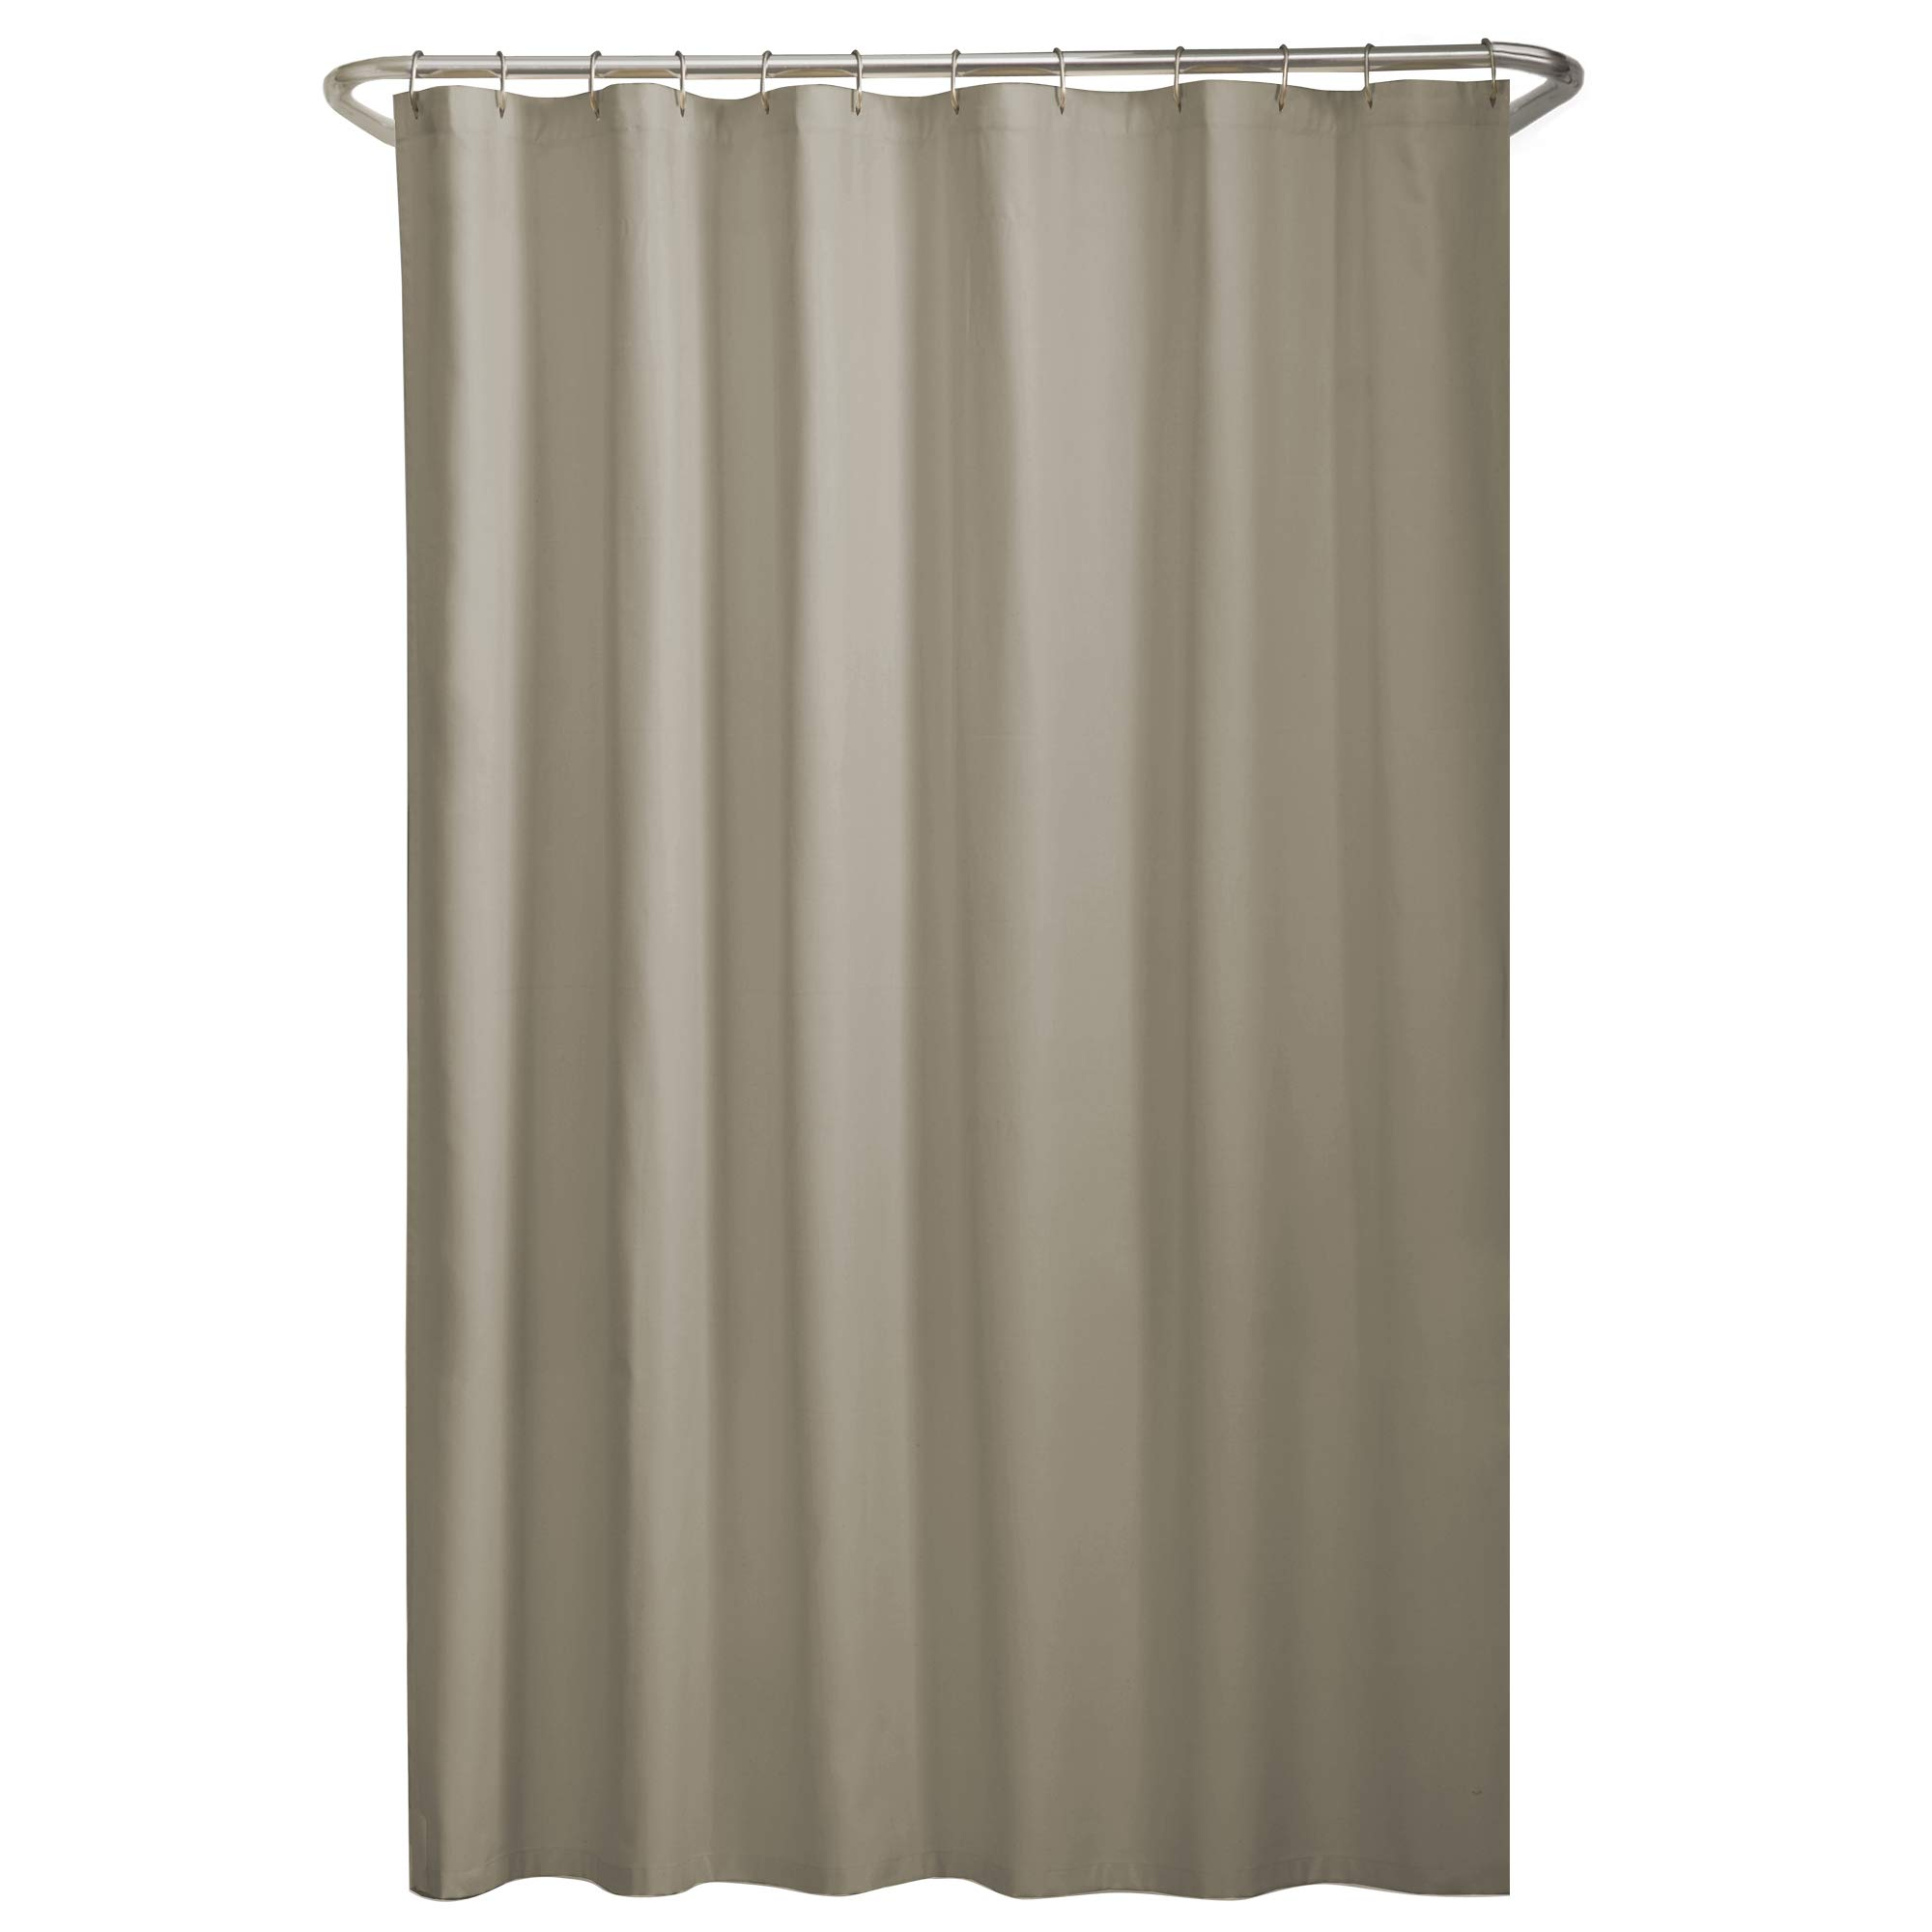 """MAYTEX Water Repellent Fabric Shower Curtain or Liner, 70"""" x 72"""", Beige"""